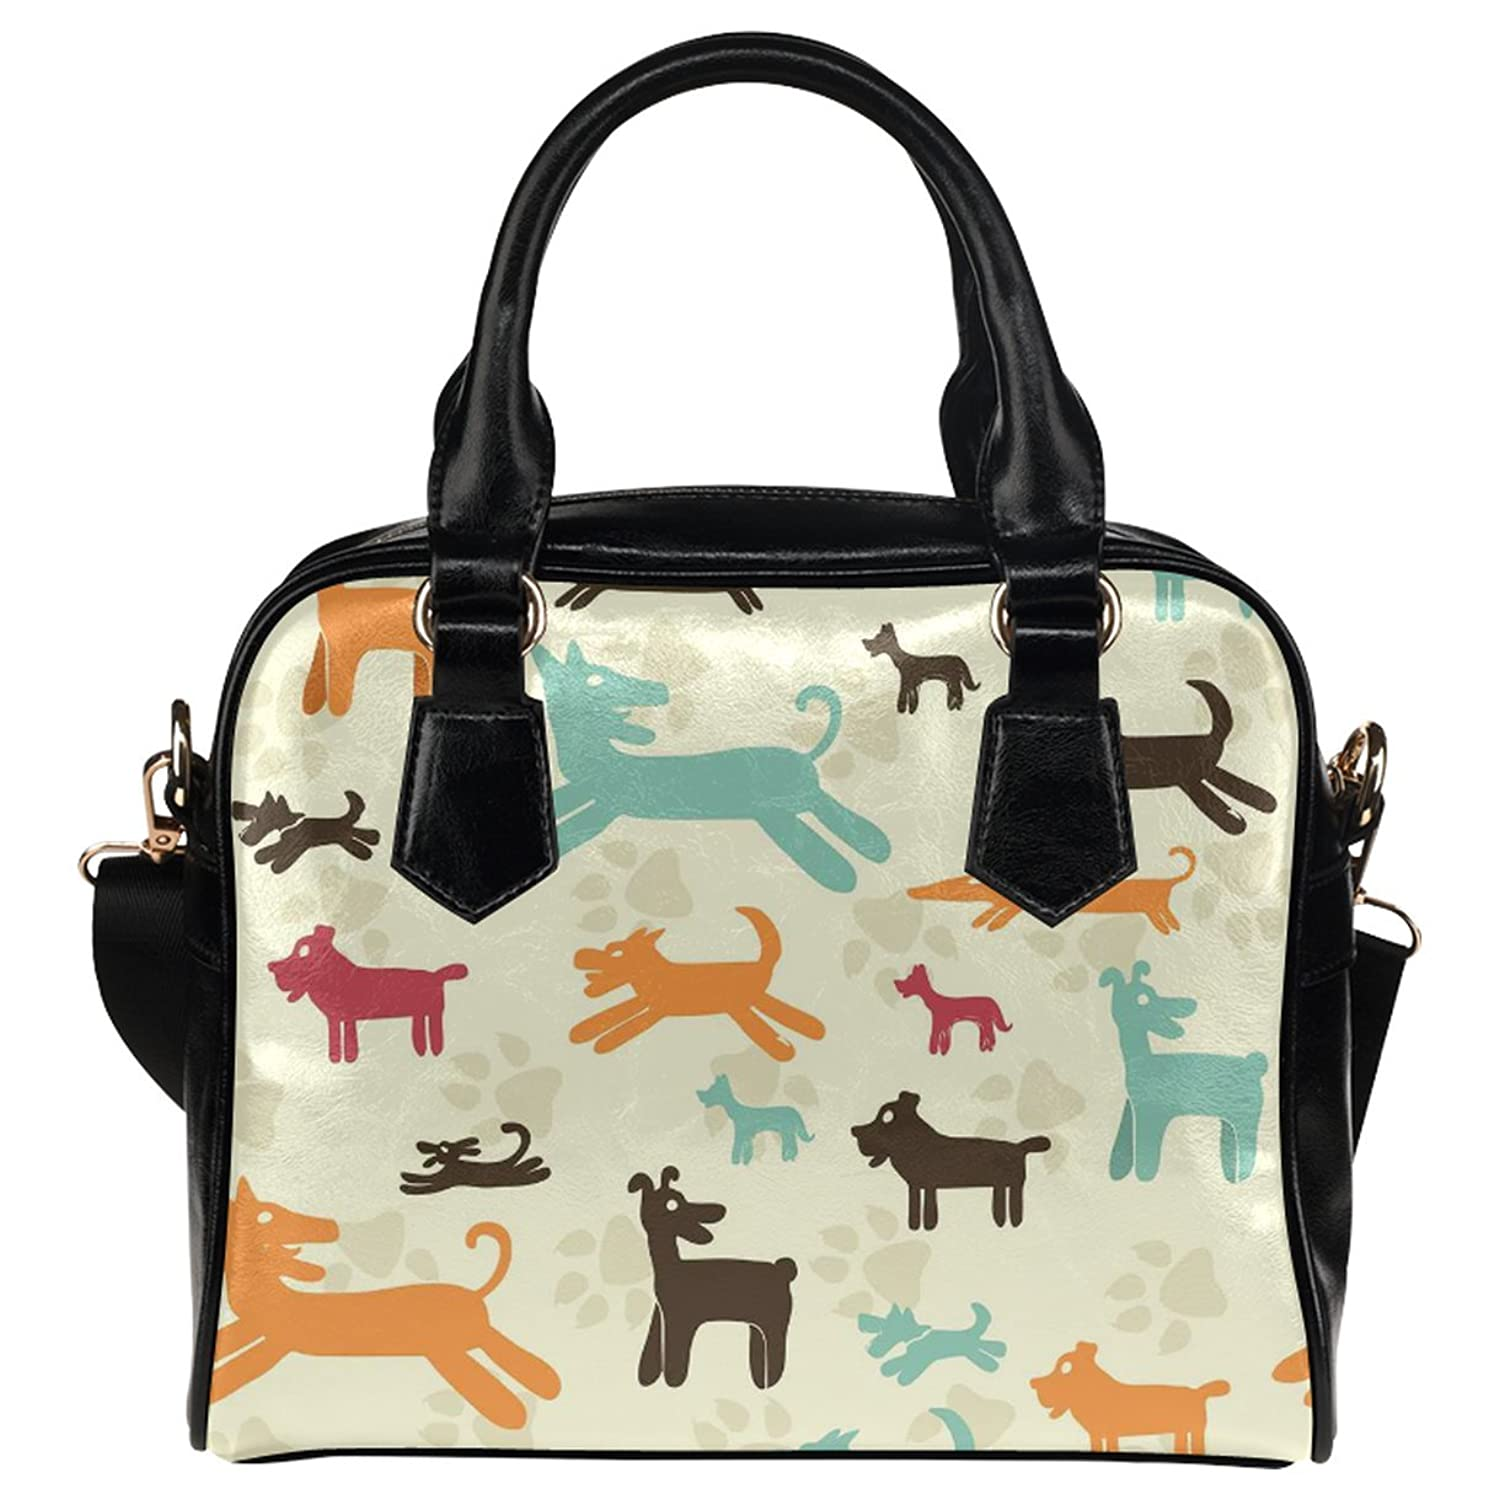 CASECOCO Paw Print Dachshund Puppy Women's PU Leather Purse Handbag Shoulder Bag